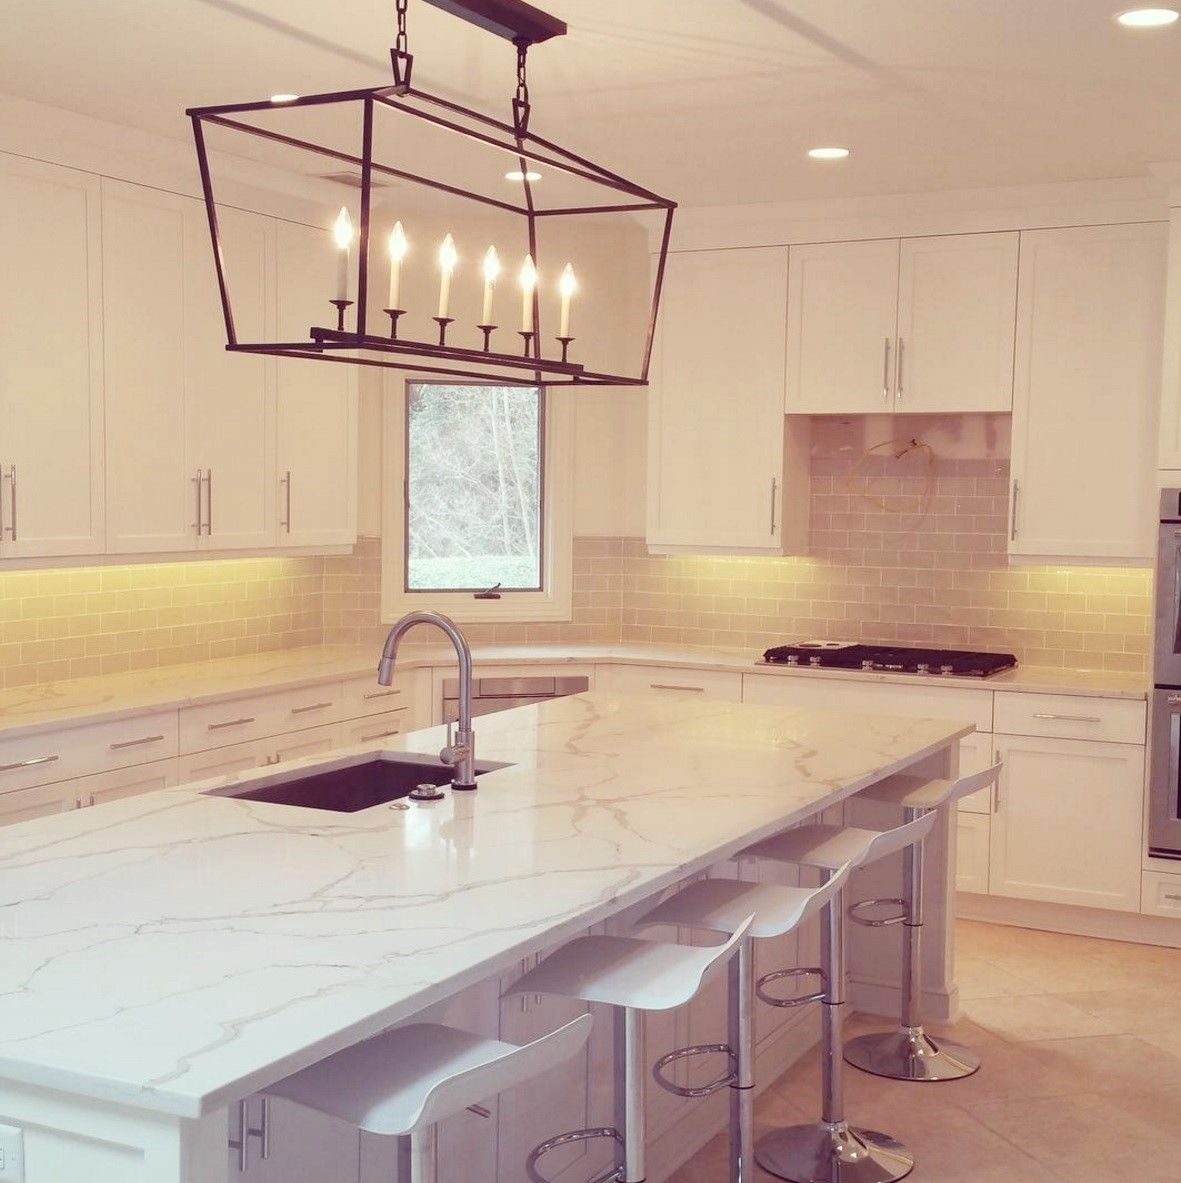 How to choose perfect kitchen countertop for you